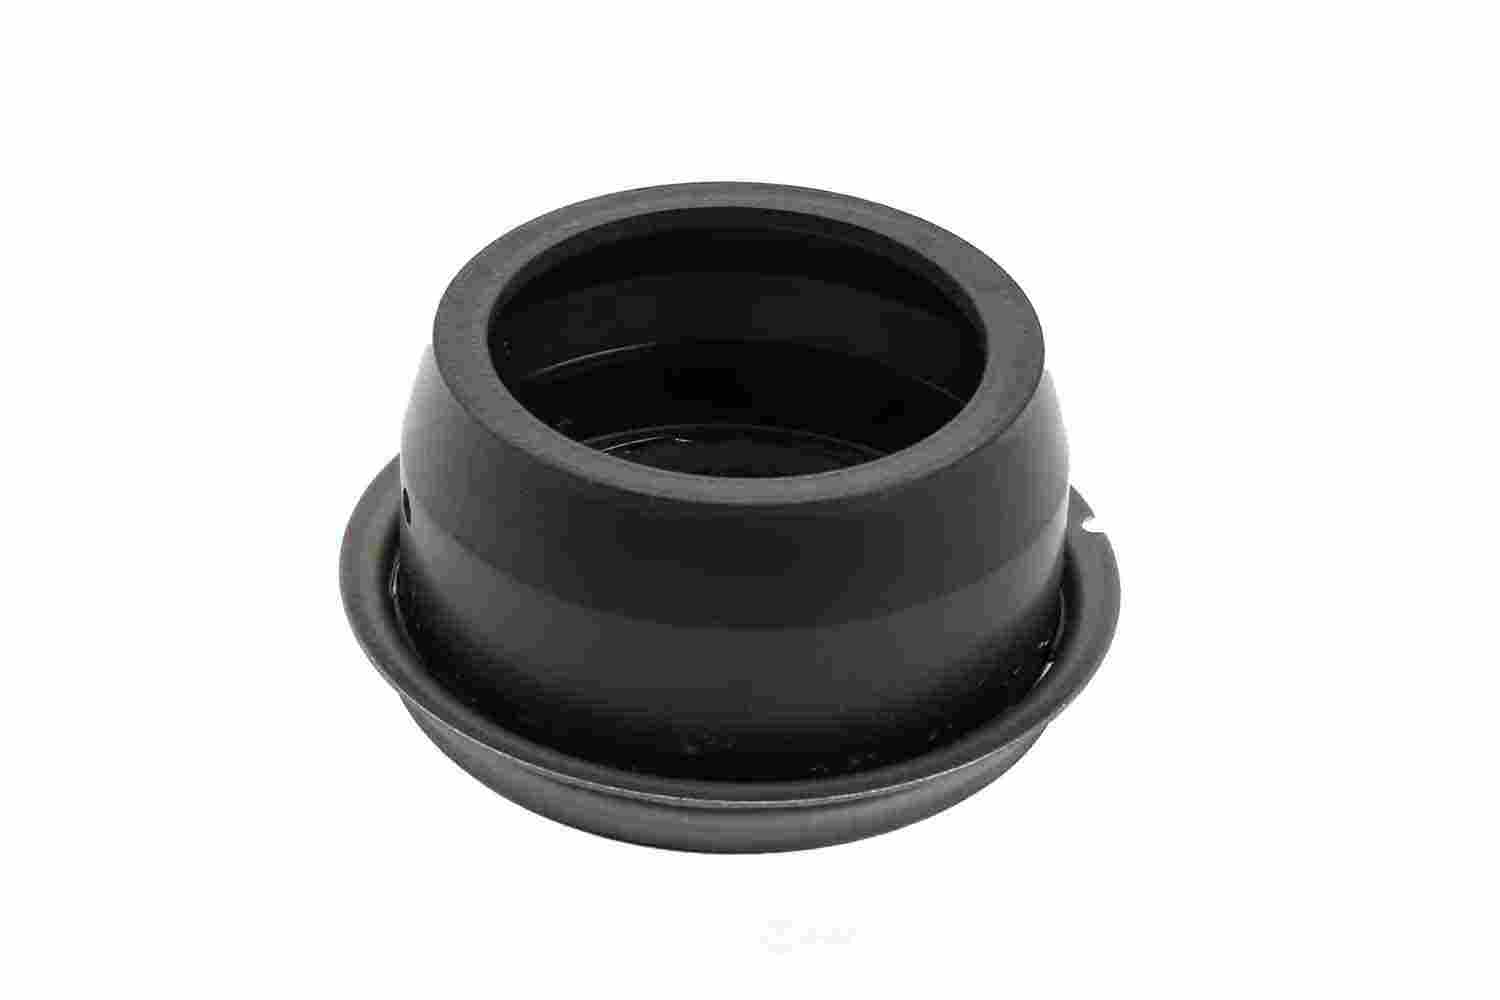 ACDELCO OE SERVICE CANADA - Transfer Case Output Shaft Seal - DCG 24233898